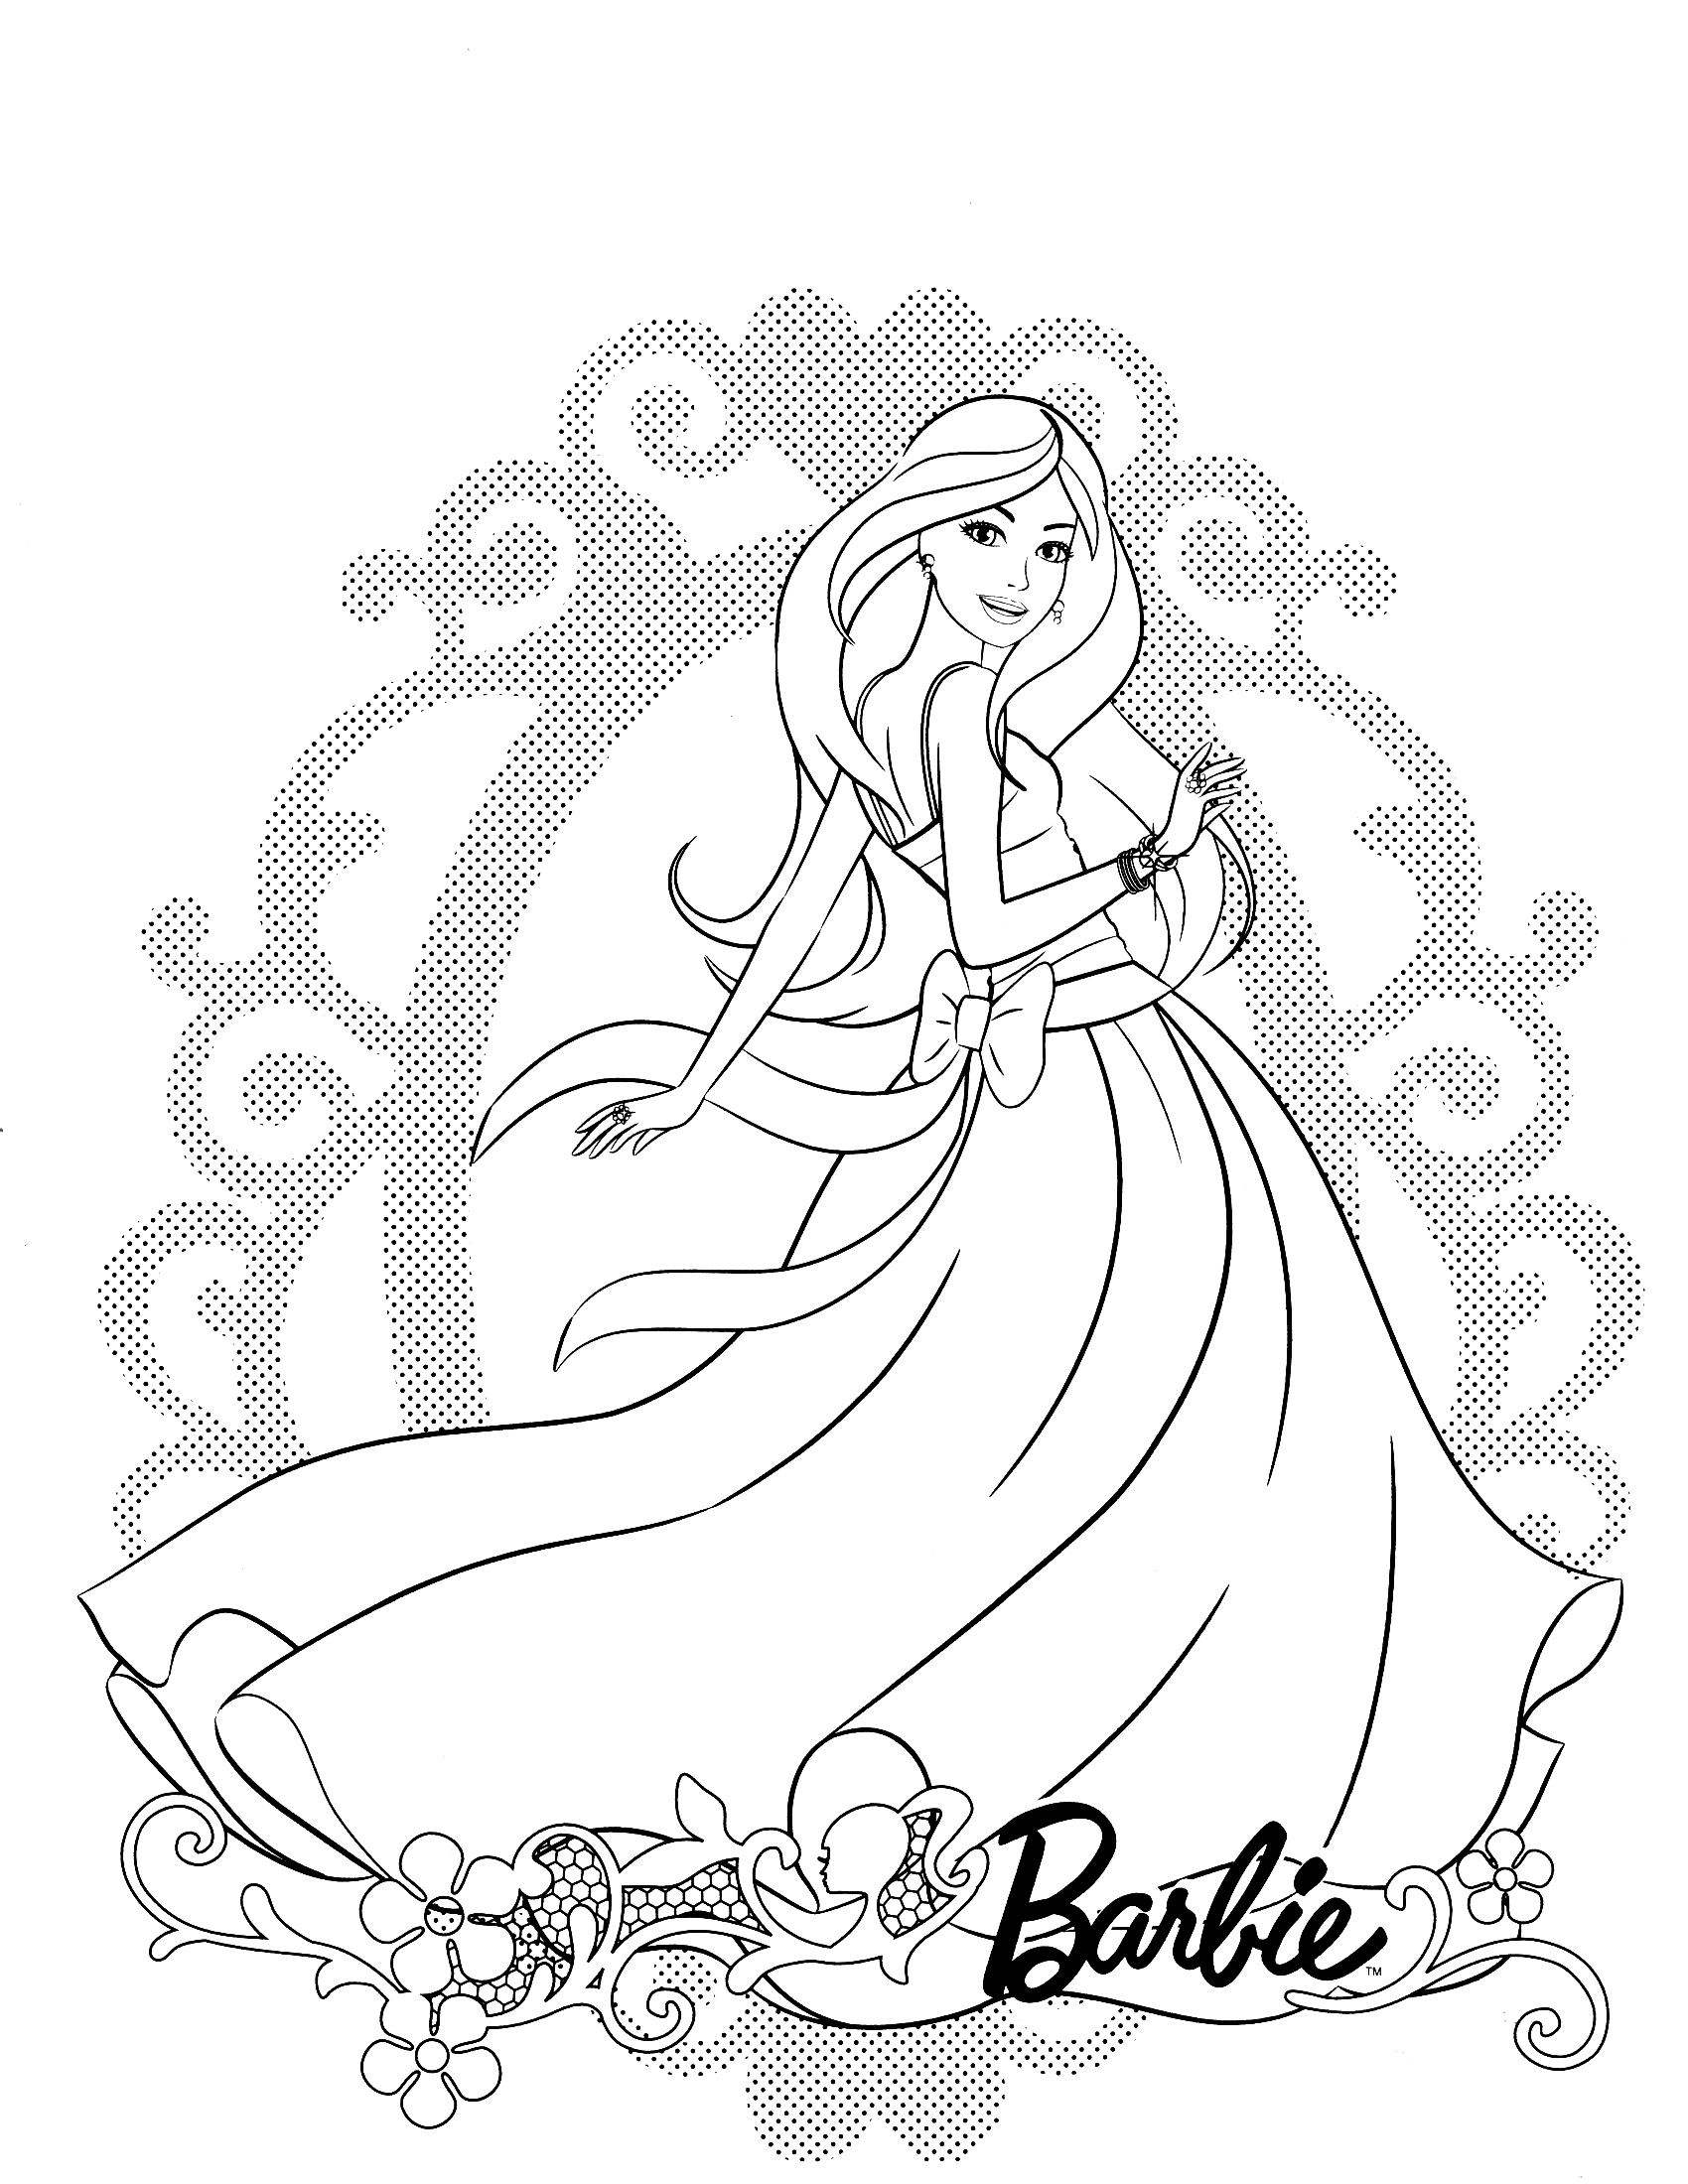 barbie dream house coloring pages barbie life in the dreamhouse coloring pages coloring pages pages house dream coloring barbie